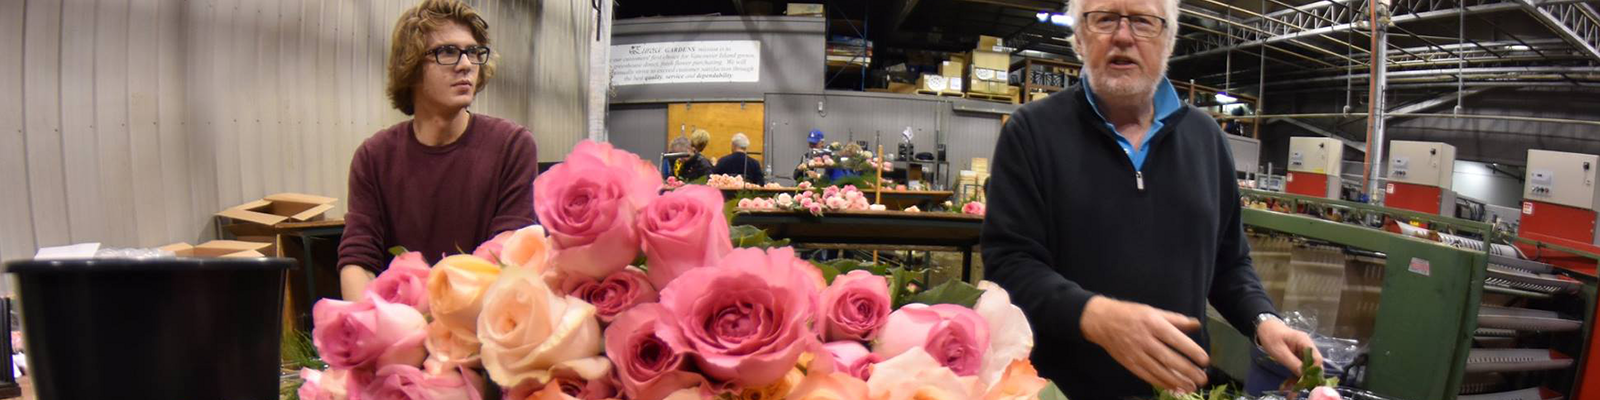 Sorting Roses for the Annual Sale